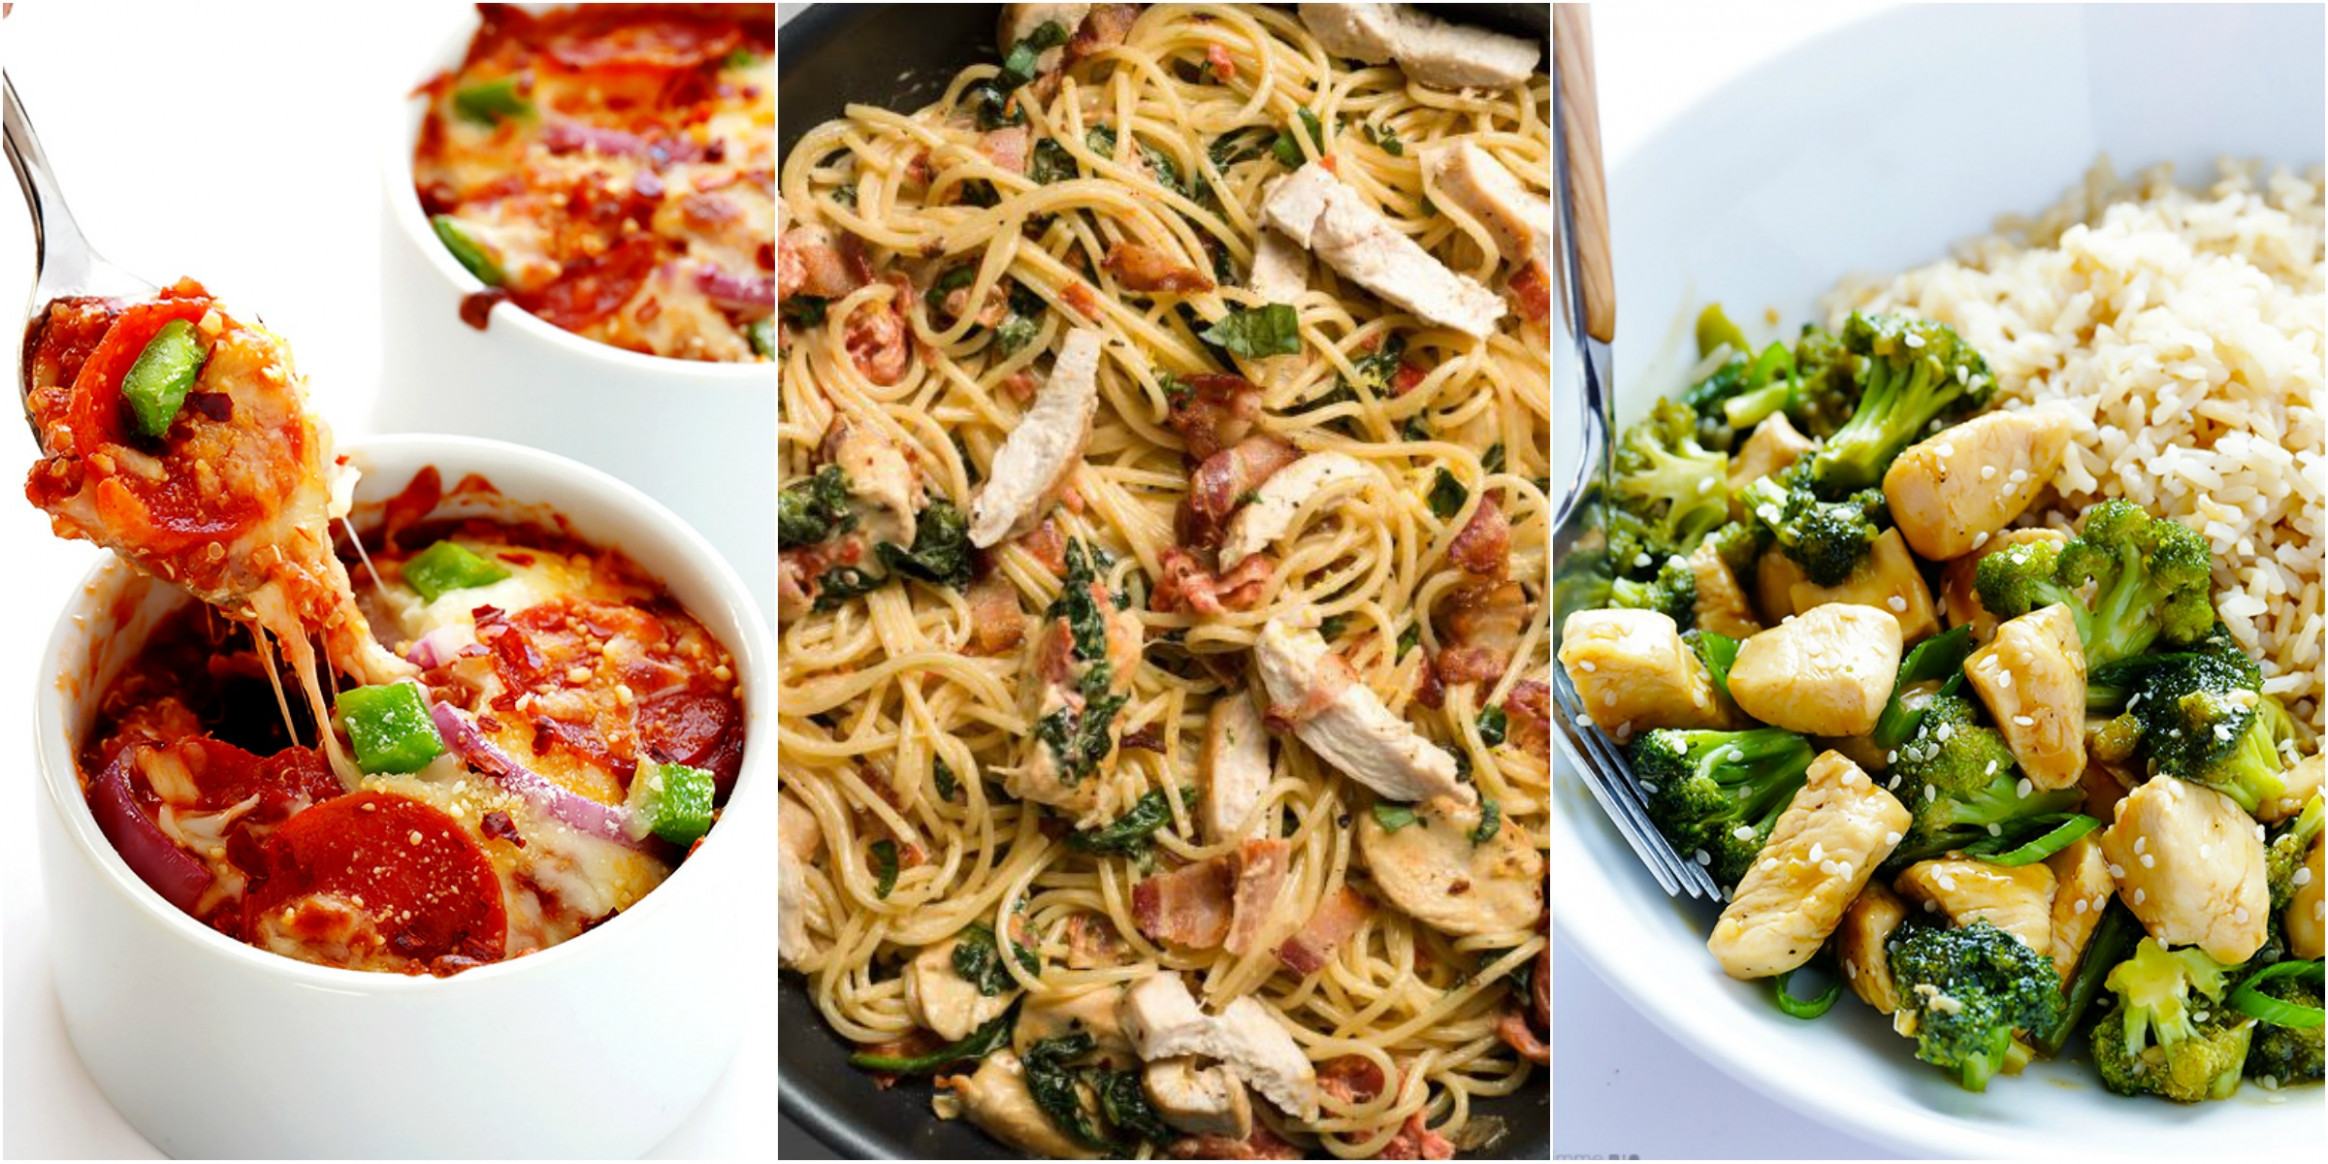 20 Quick & Easy Dinner Ideas - Recipes for Fast Family ..